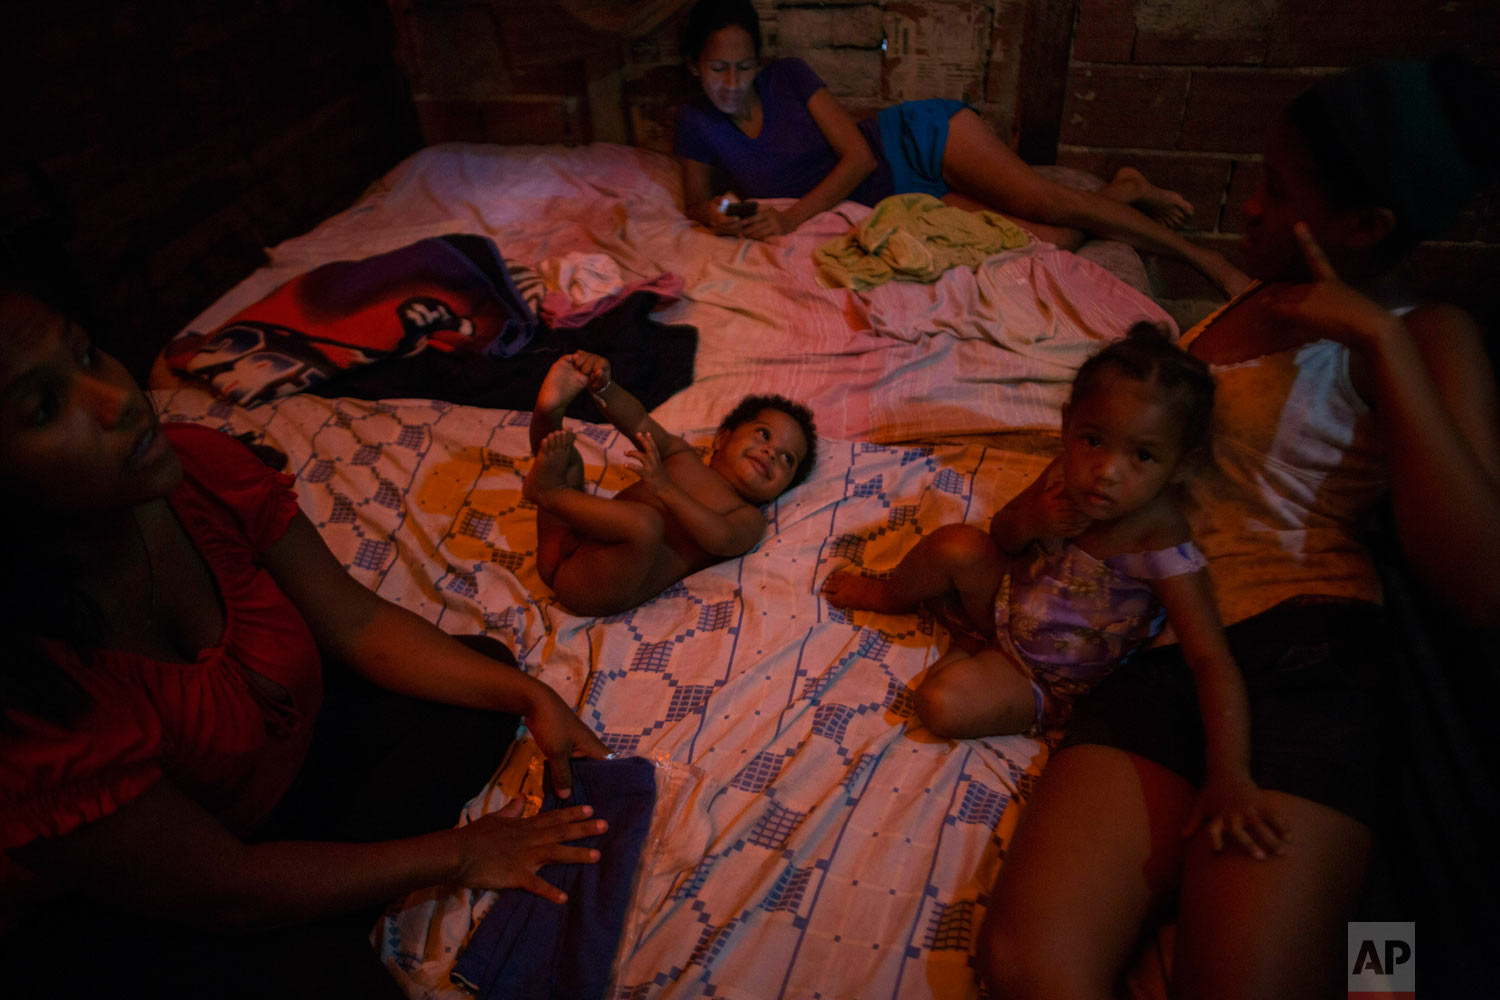 Mothers take care of their children on their room inside a building occupied by squatting families in Caracas, Venezuela, Tuesday, May 7, 2019. (AP Photo/Rodrigo Abd)